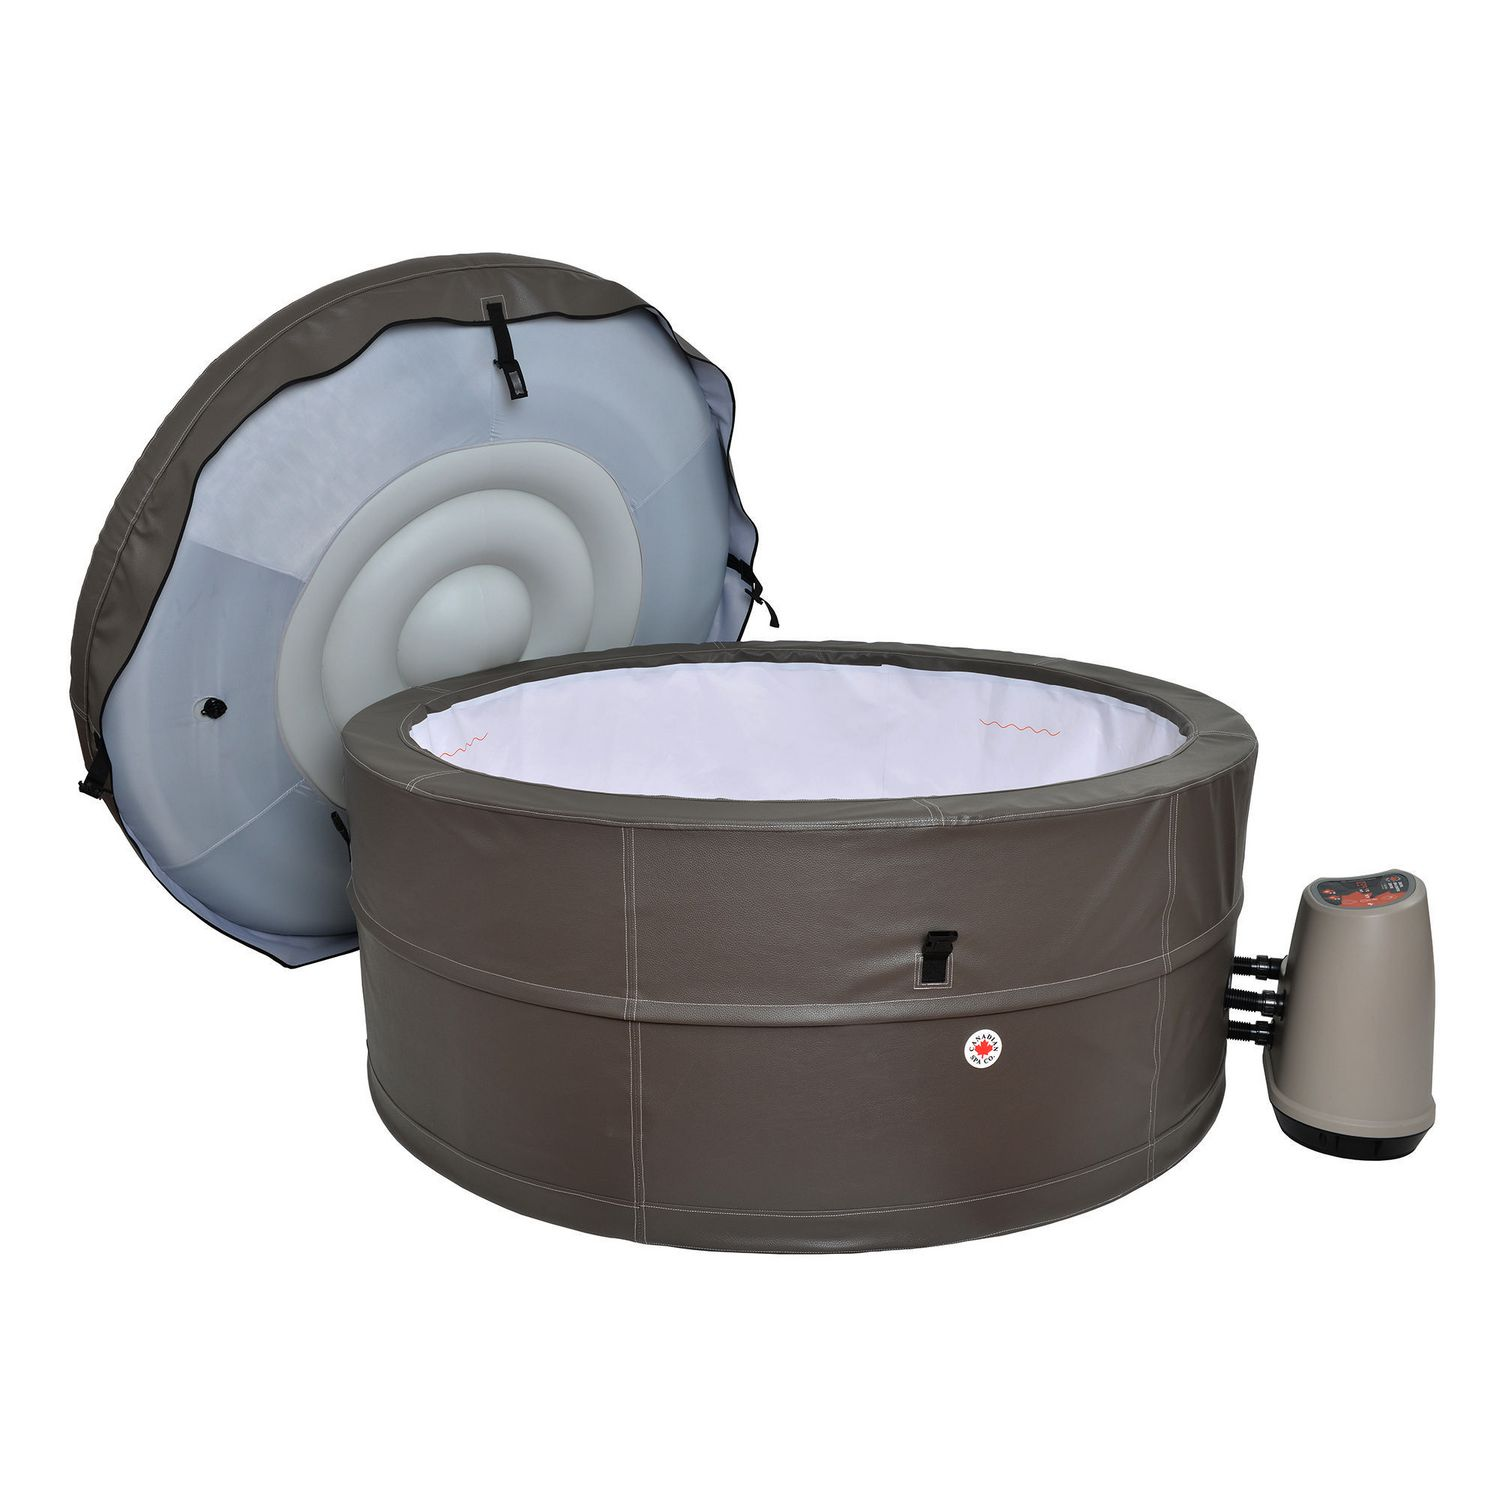 detail for tub sale massage outdoor tubs speakers buy product portable sex bluetooth hot with spa